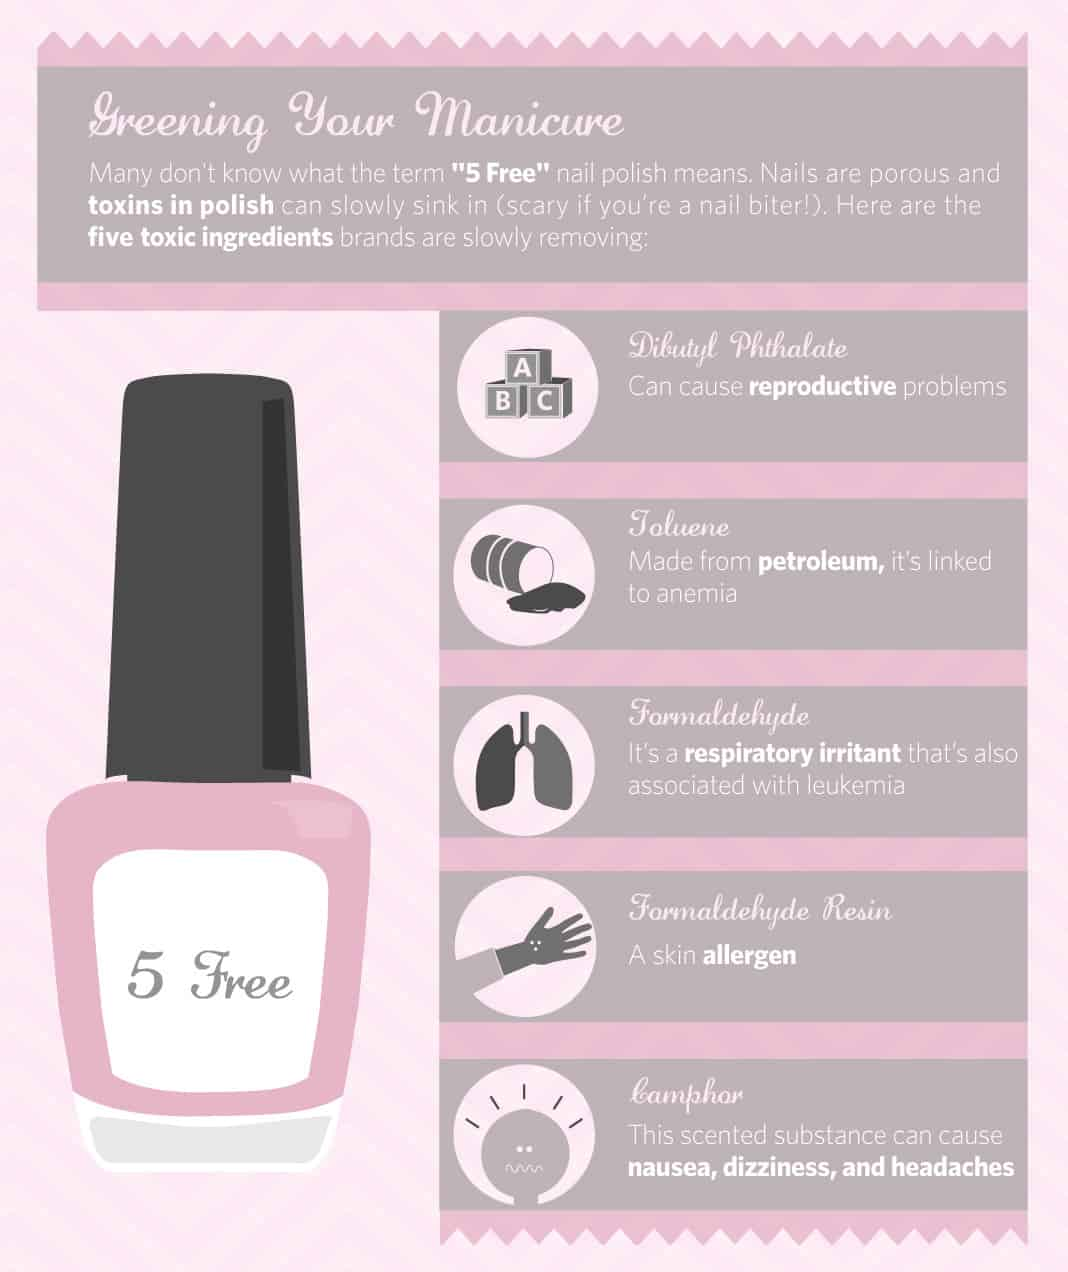 Greening Your Manicure